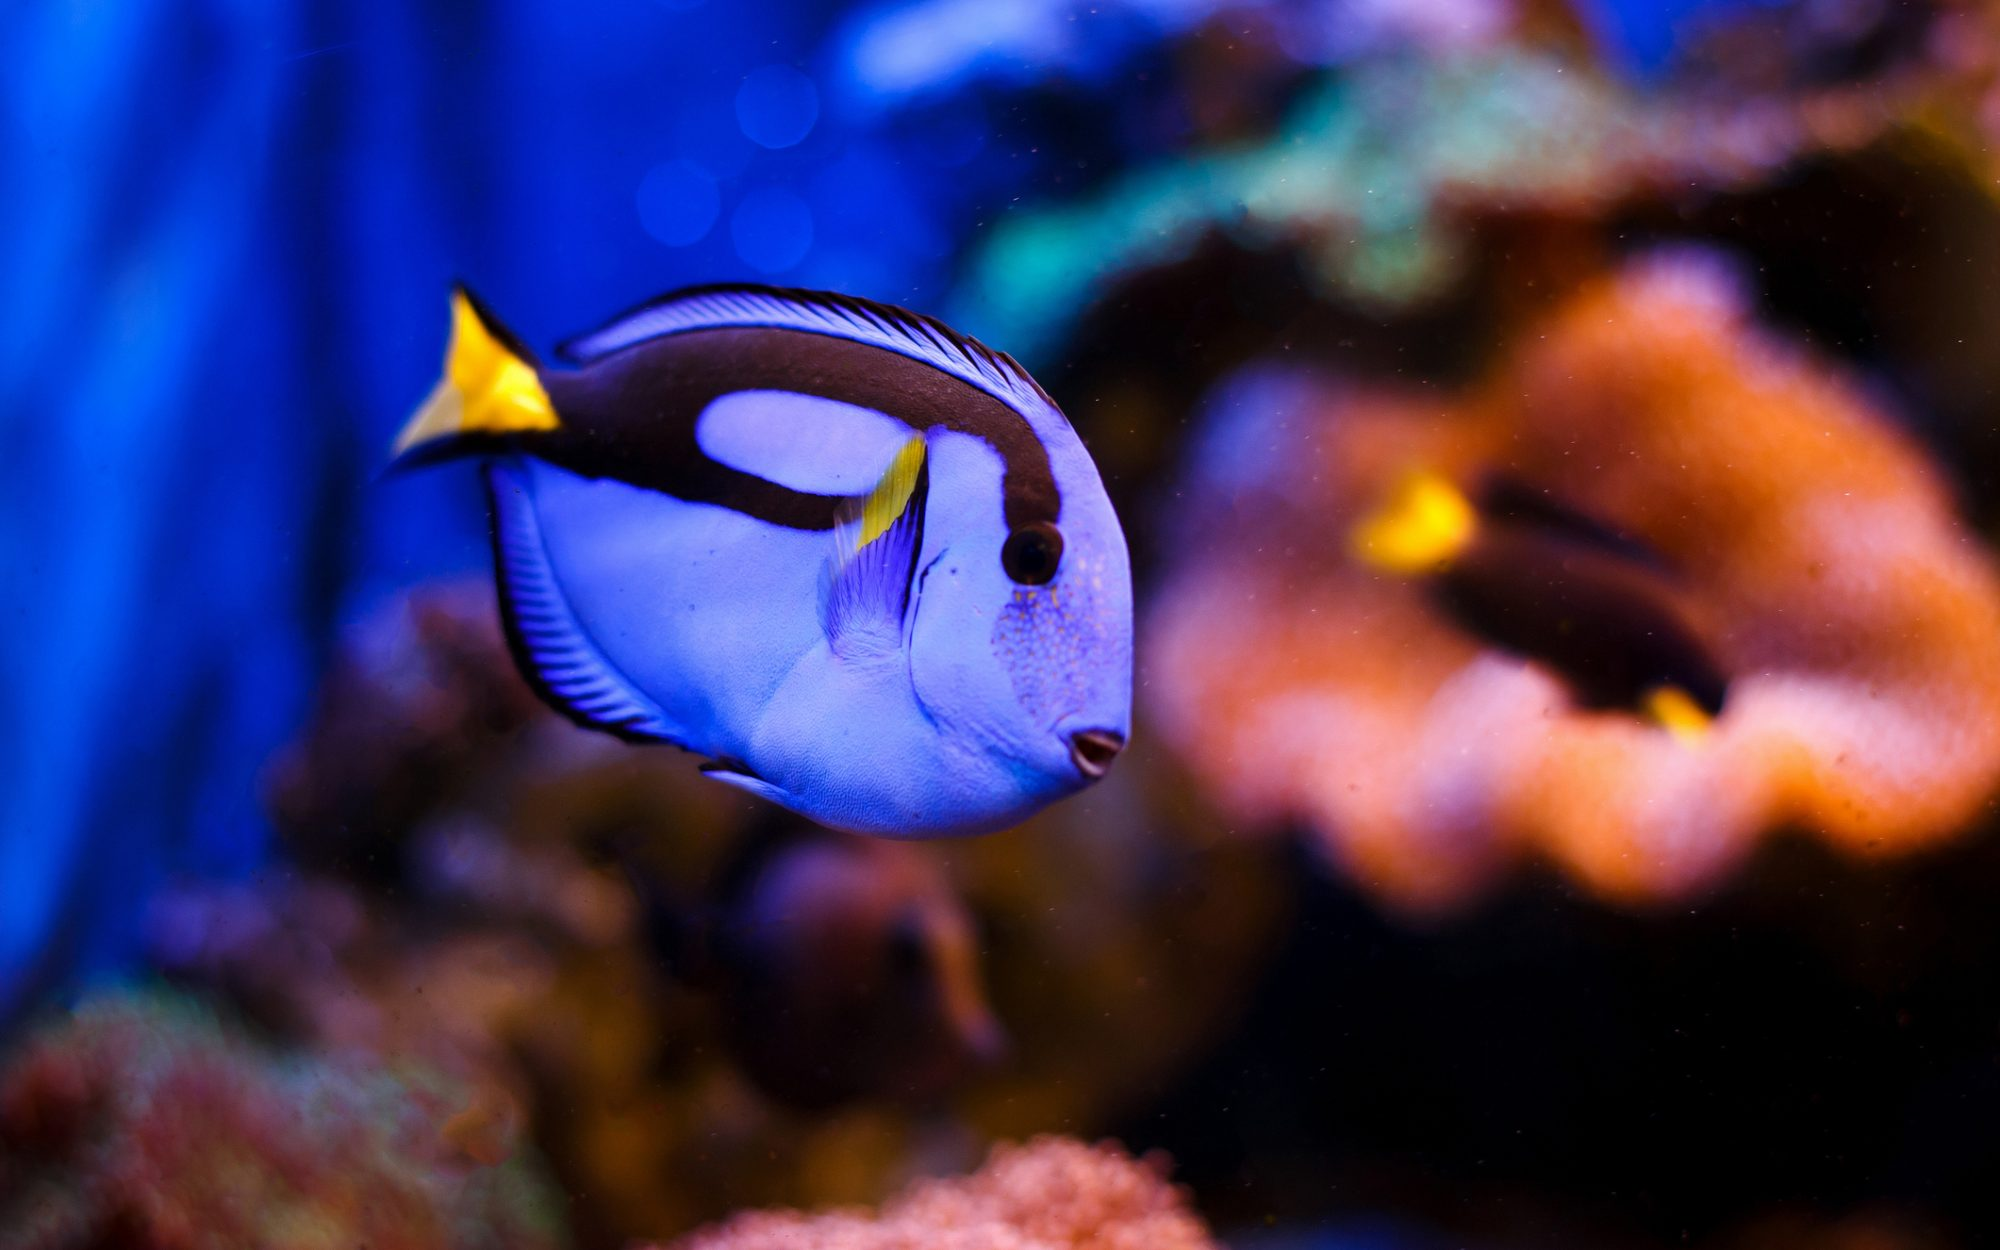 The 'Finding Dory' fish has been bred in captivity for the first time